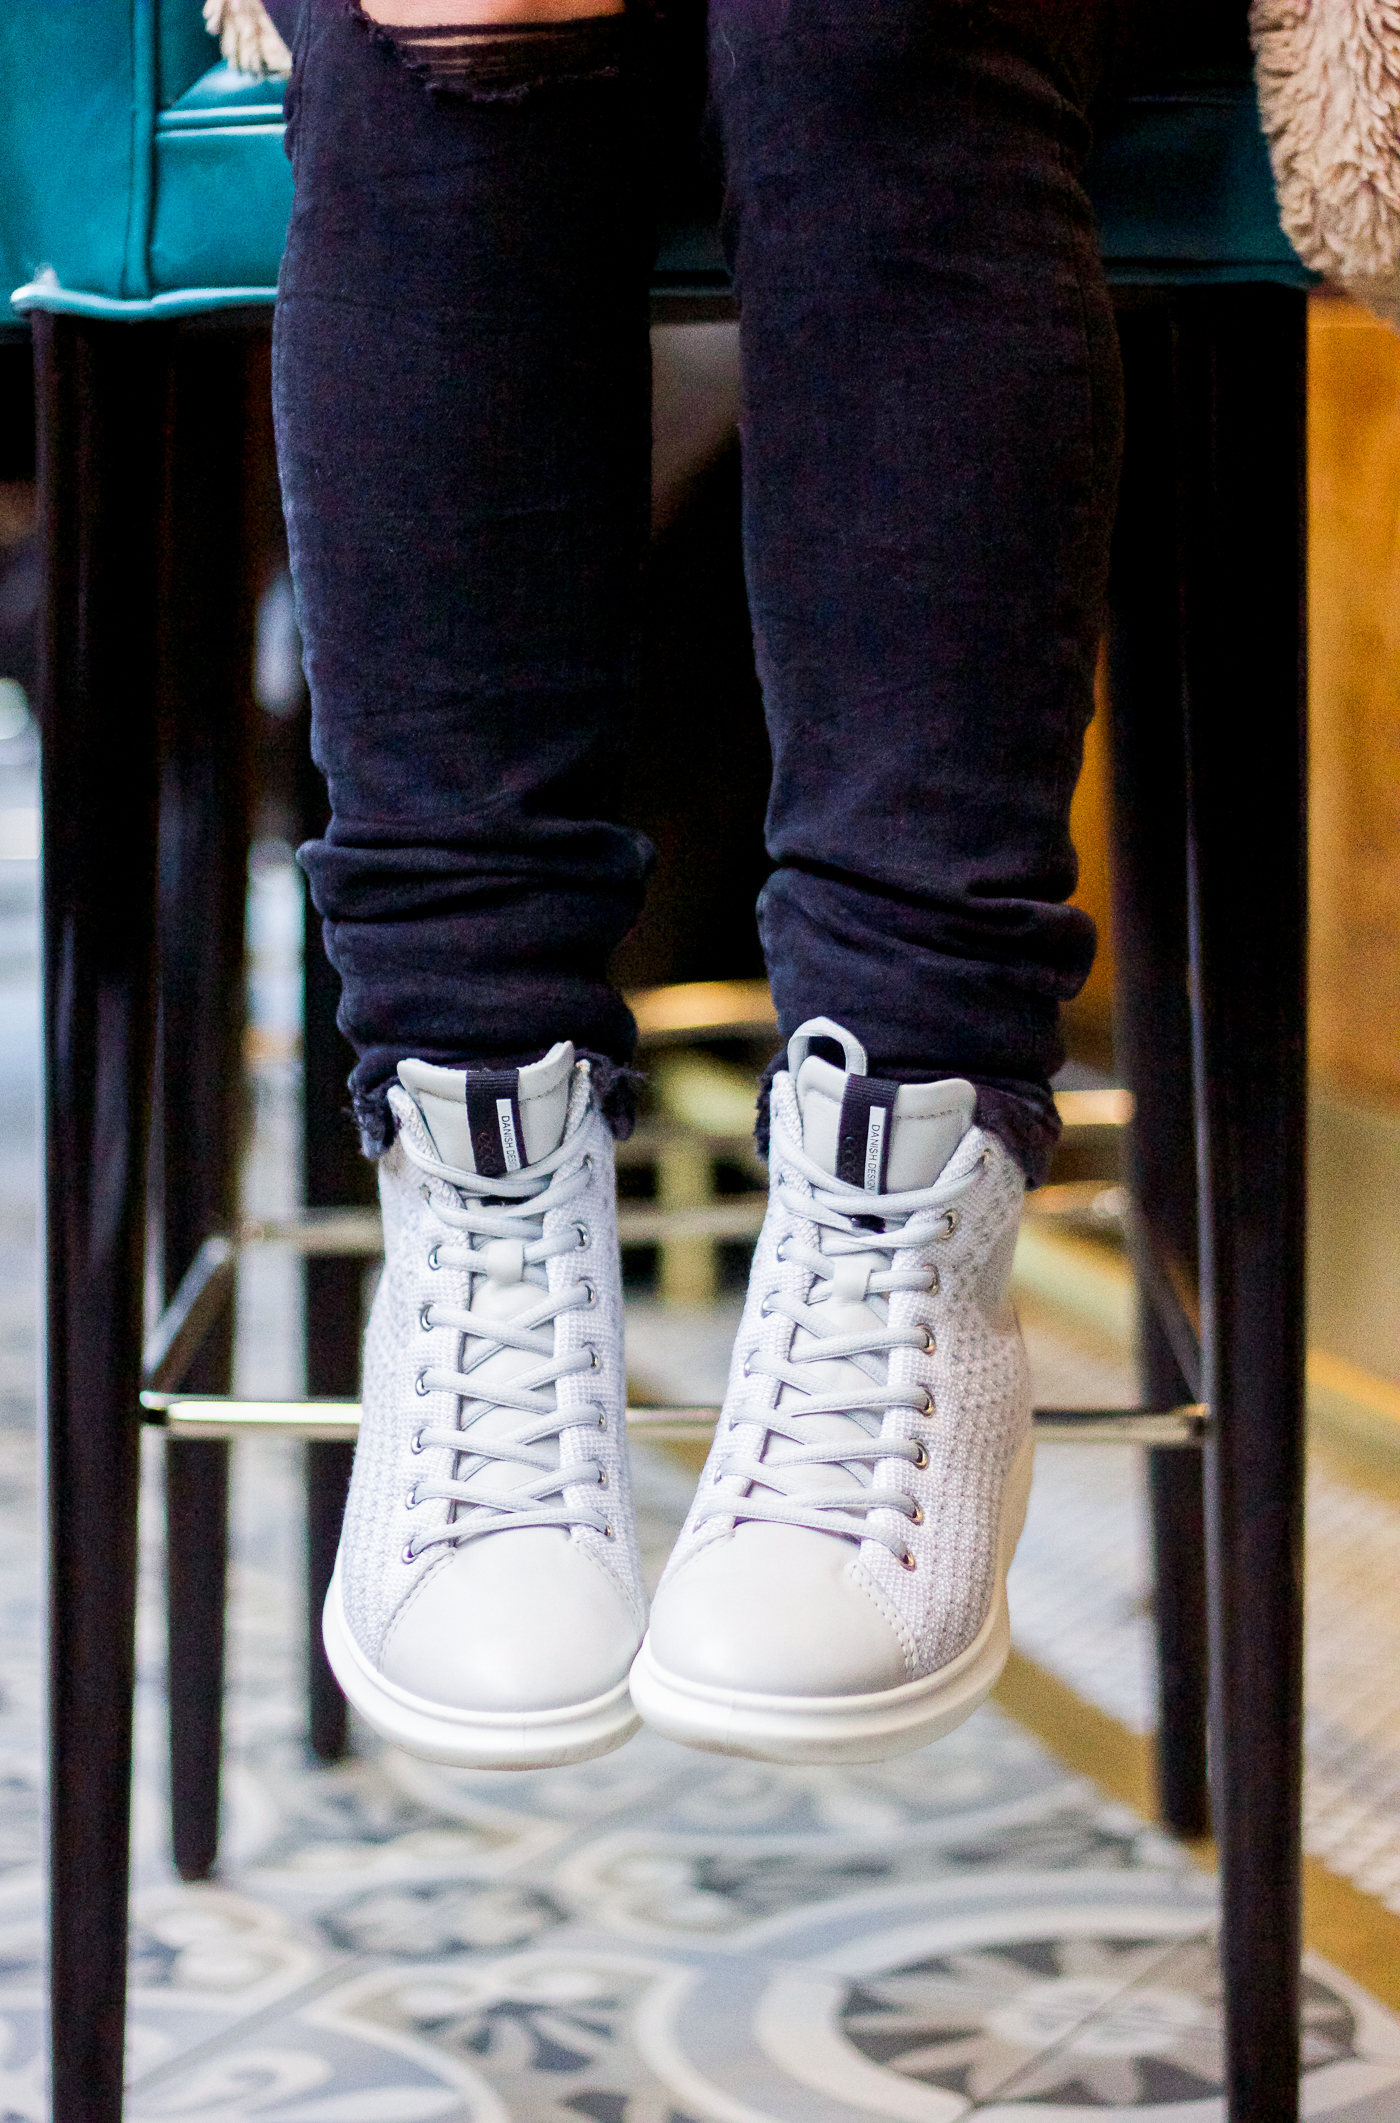 Ecco Soft 3 High Top Sneakers, see how to wear them on Toronto blogger, Jackie Goldhar